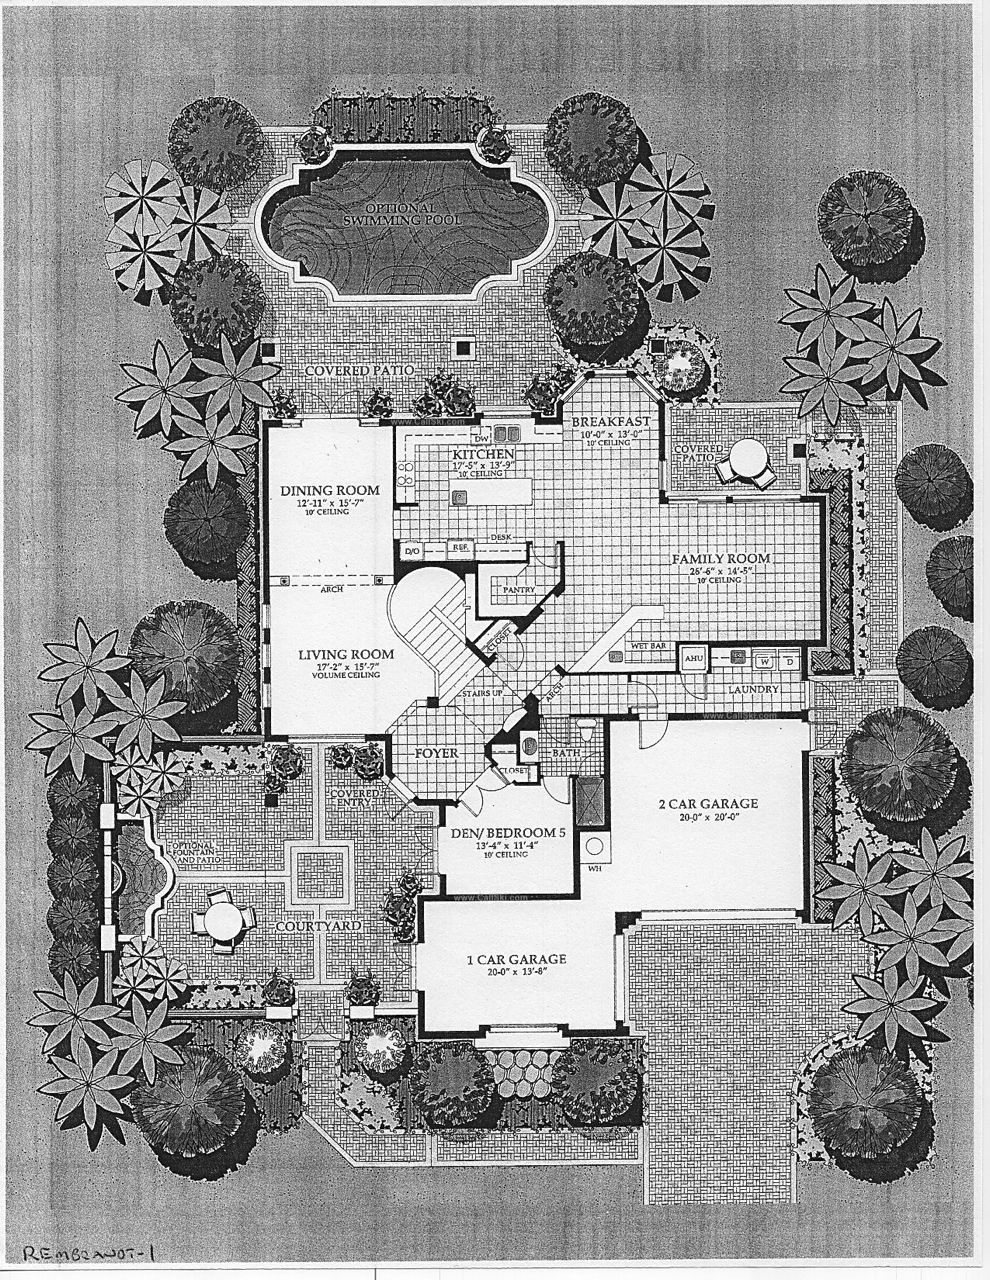 Highland ranch estates floor plans and community for Rembrandt homes floor plans